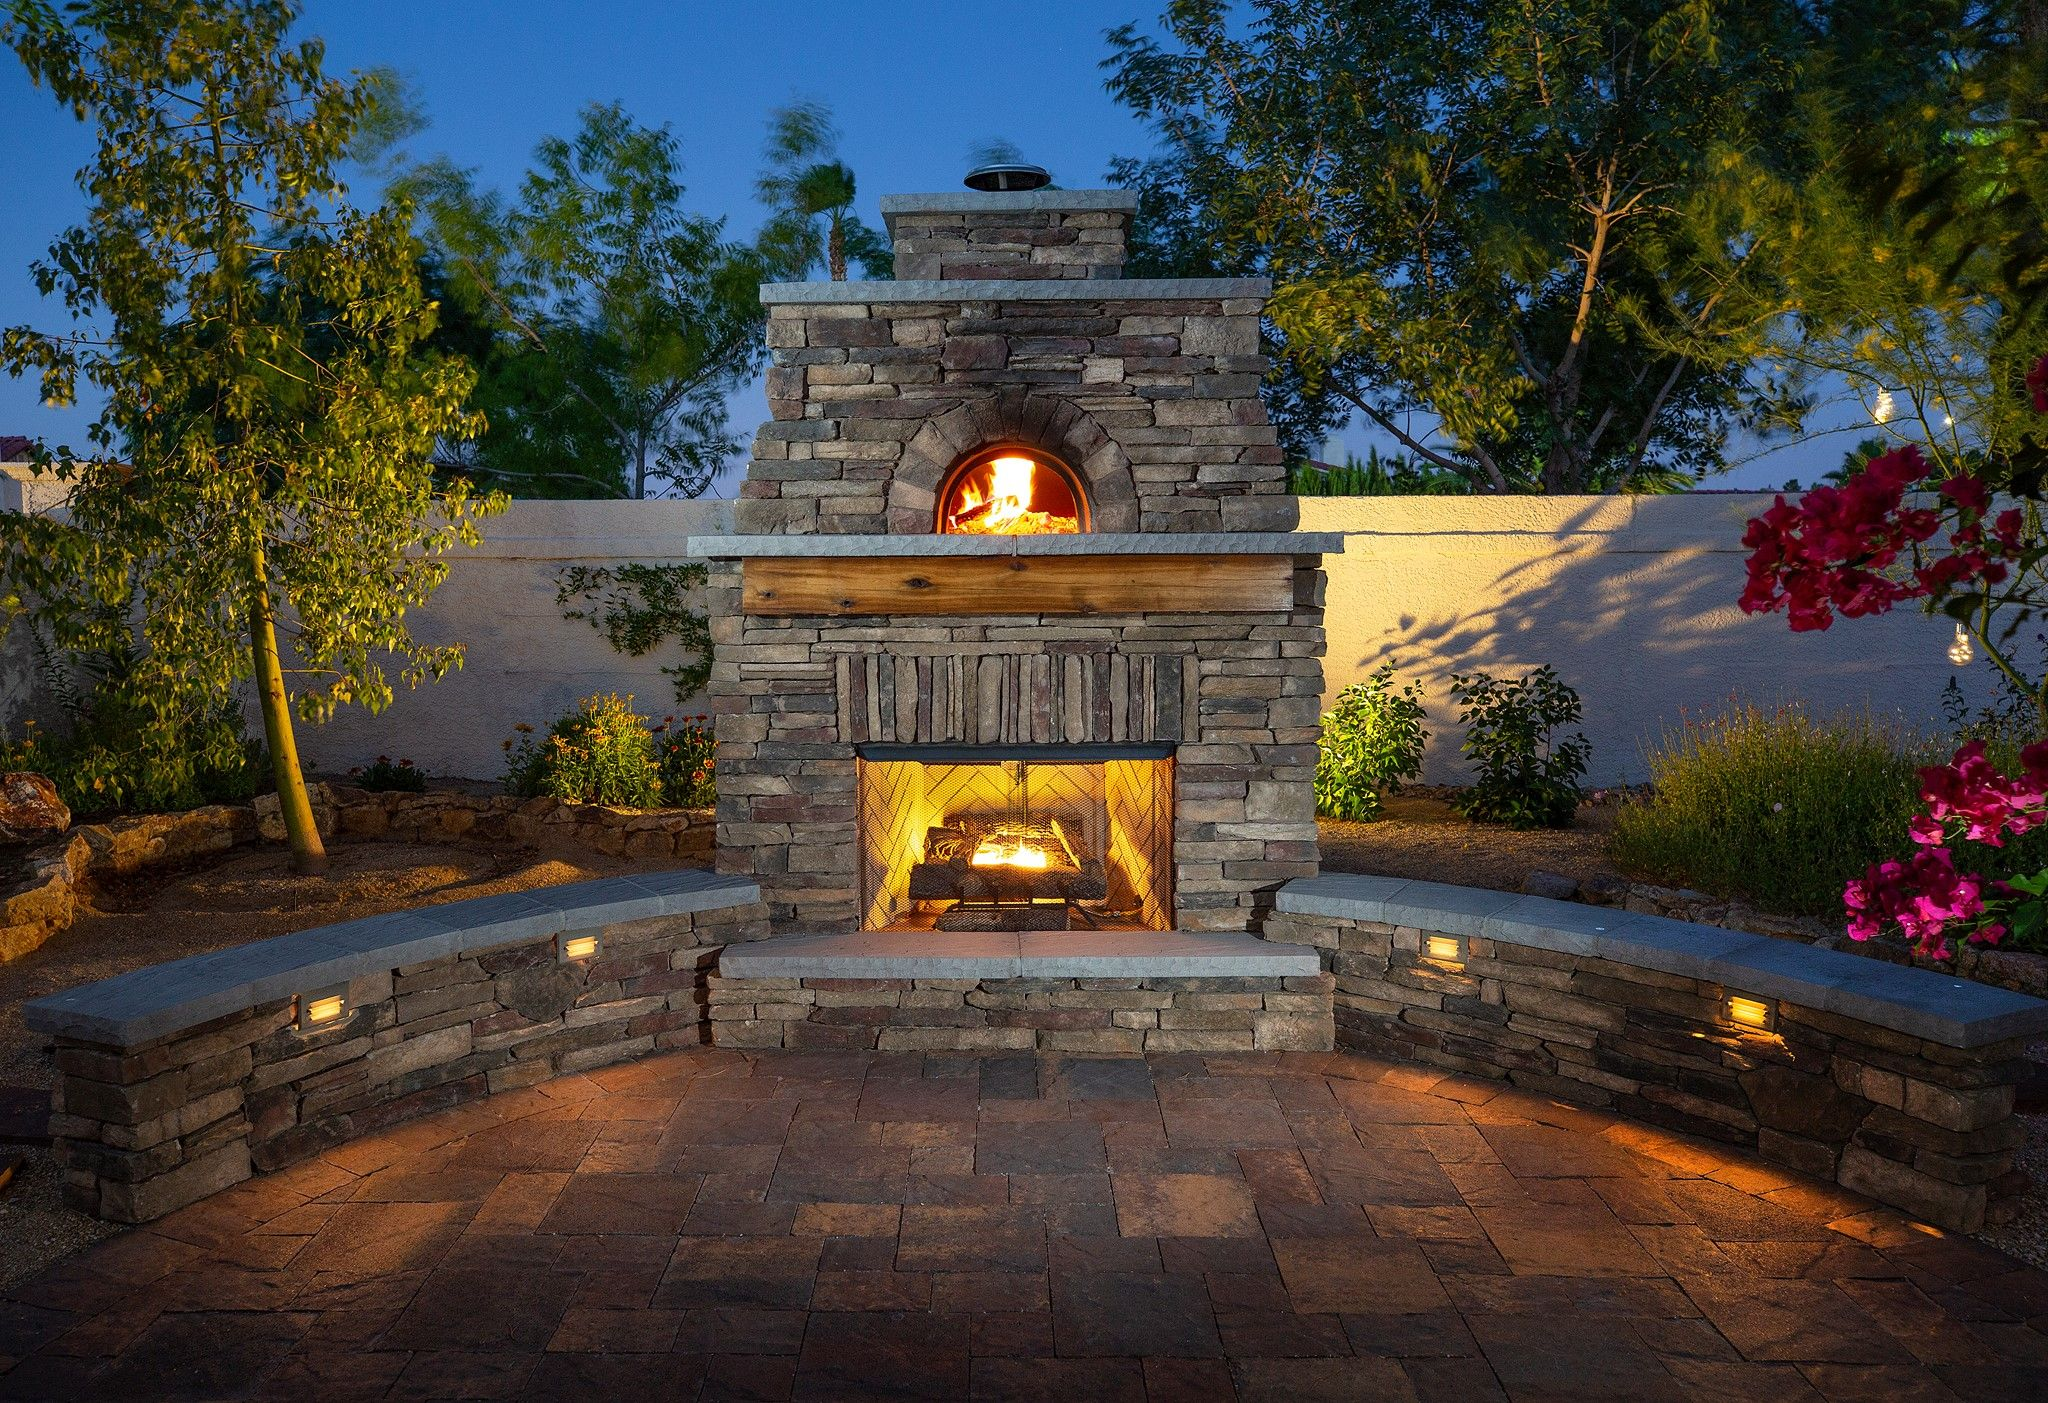 Forno Bravo Outdoor Fireplace Gallery Outdoor Fireplace Kits